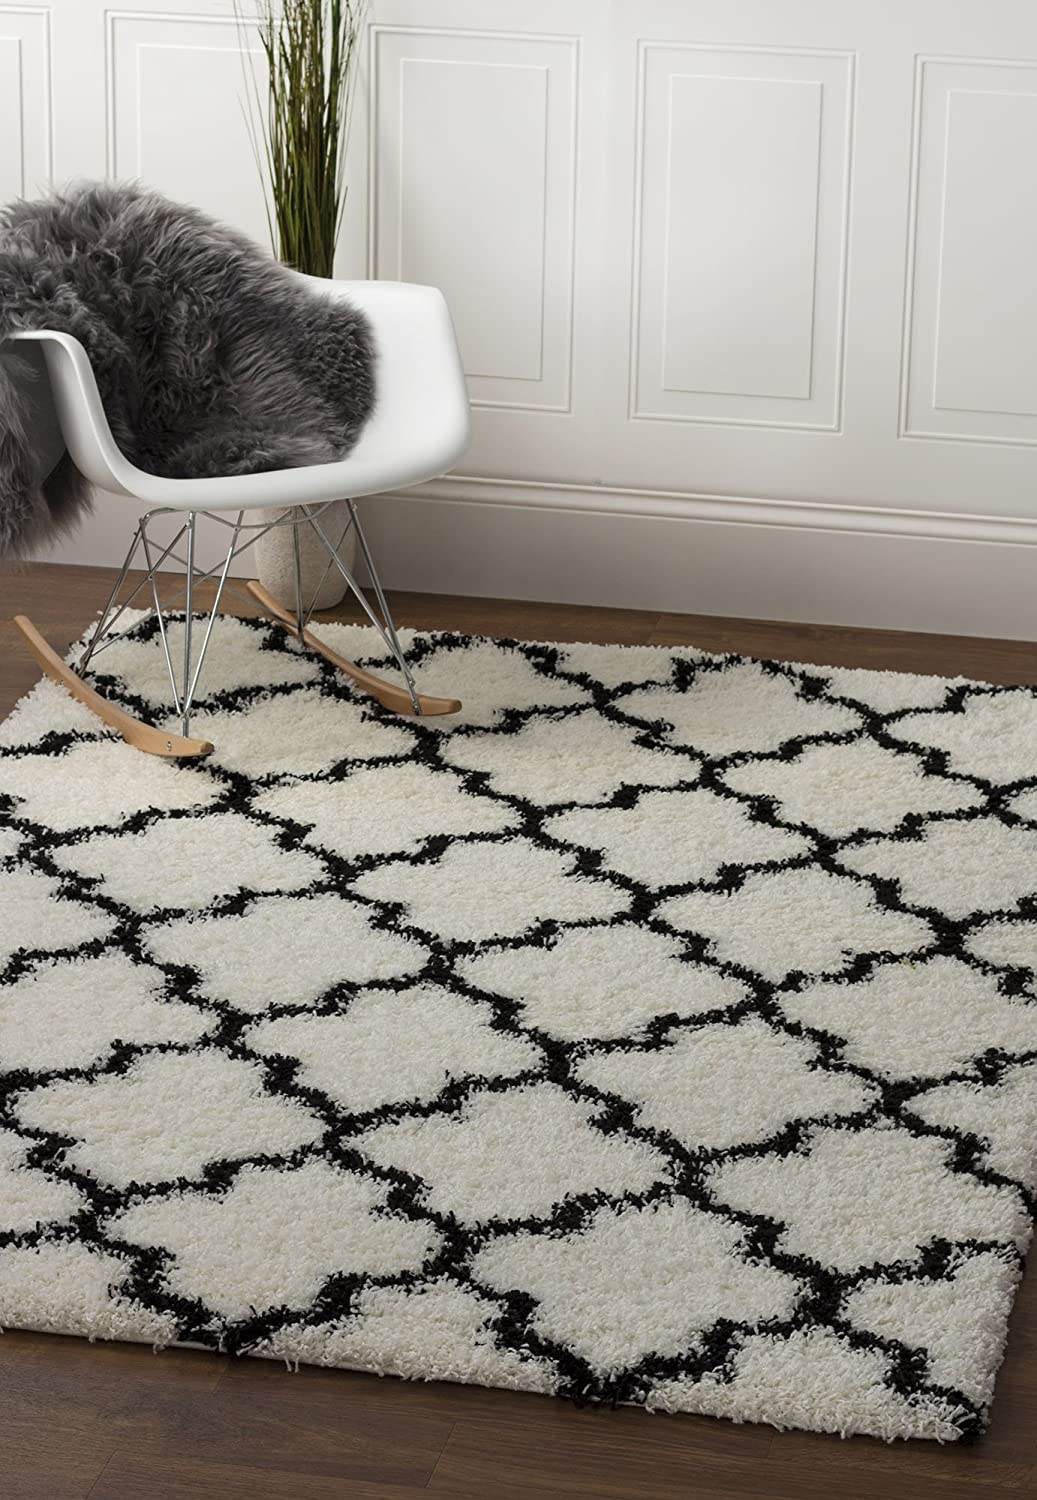 "Soft & Plush Geometric Trellis Shag Rug For Bedroom | Living Room | Entryway 3' 3"" X 5' 1"", White & Black by Super Area Rugs"